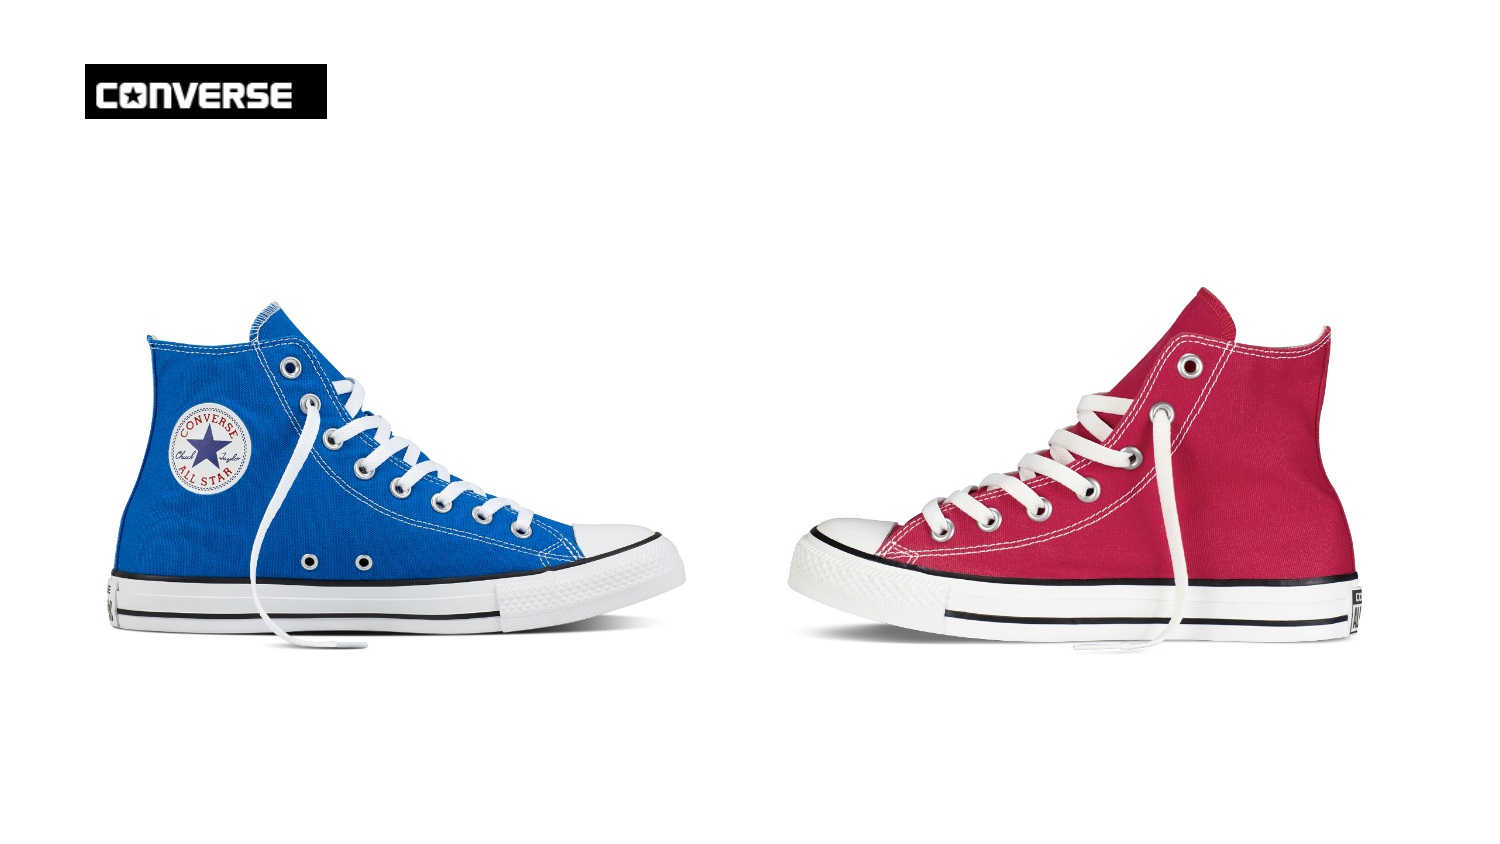 CONVERSE - 40% auf Selected Bright Styles